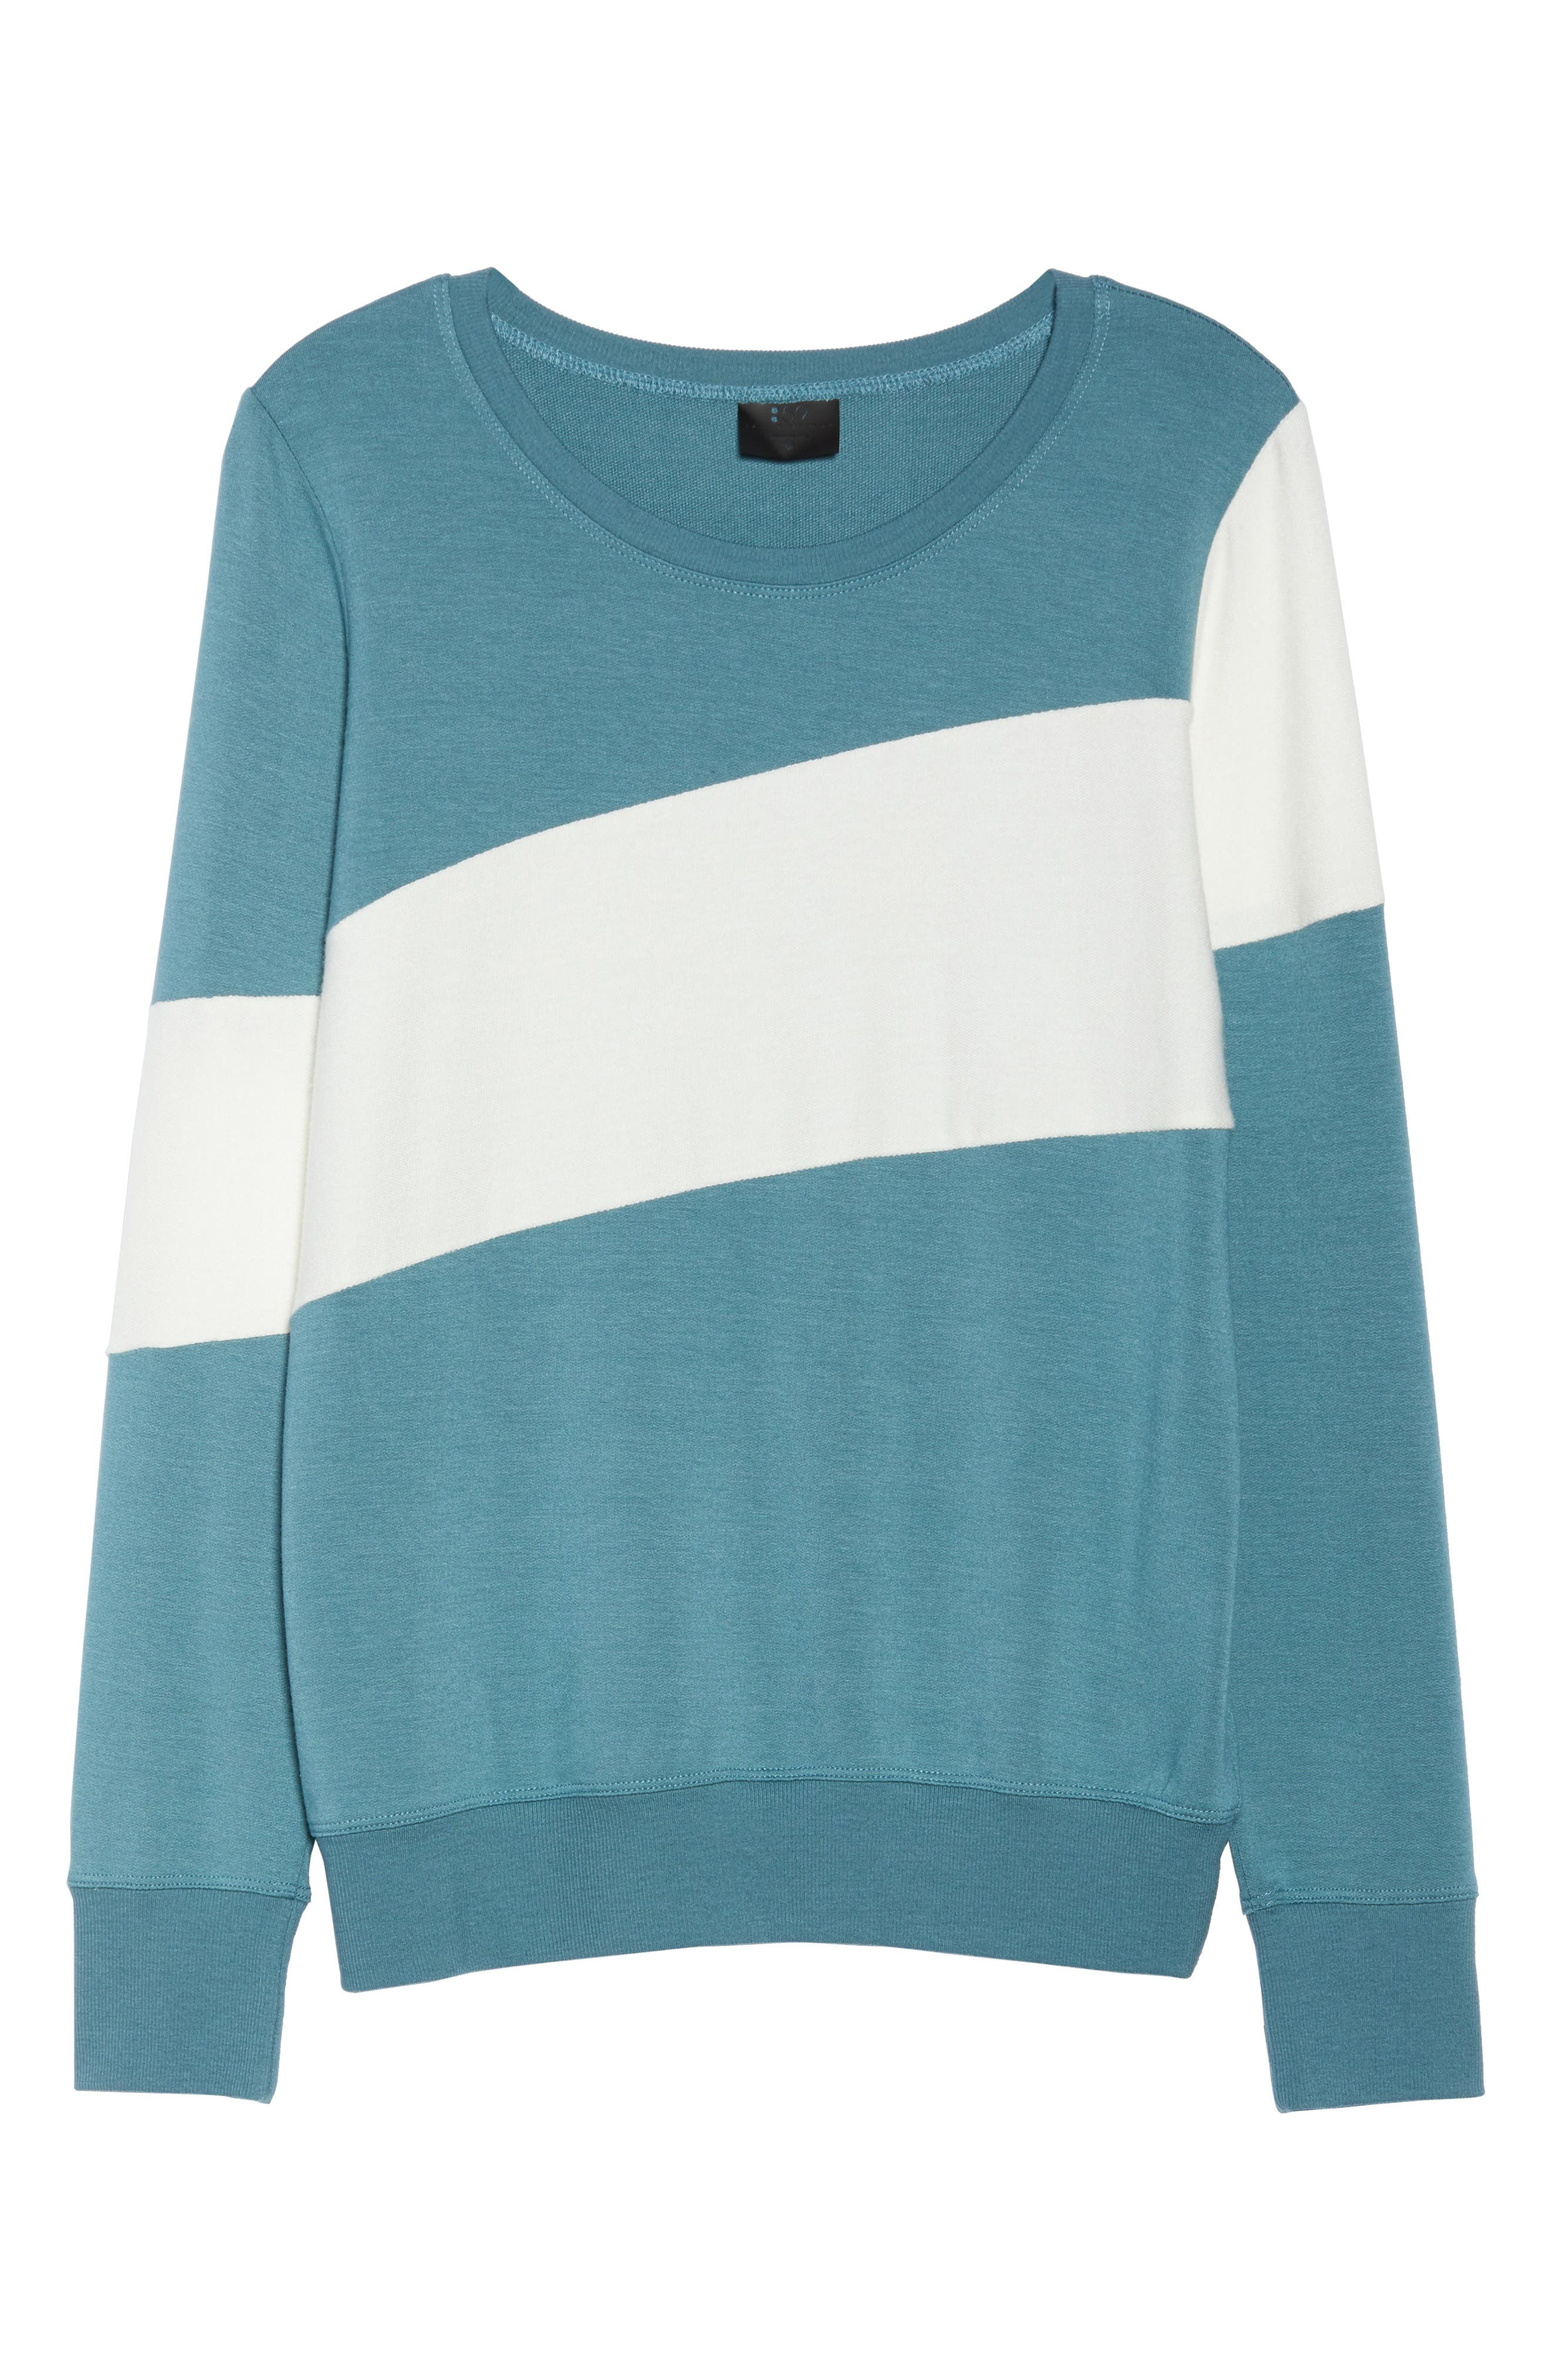 Ramp Sweatshirt,                             Alternate thumbnail 7, color,                             BLUE SURF/ OFF WHITE